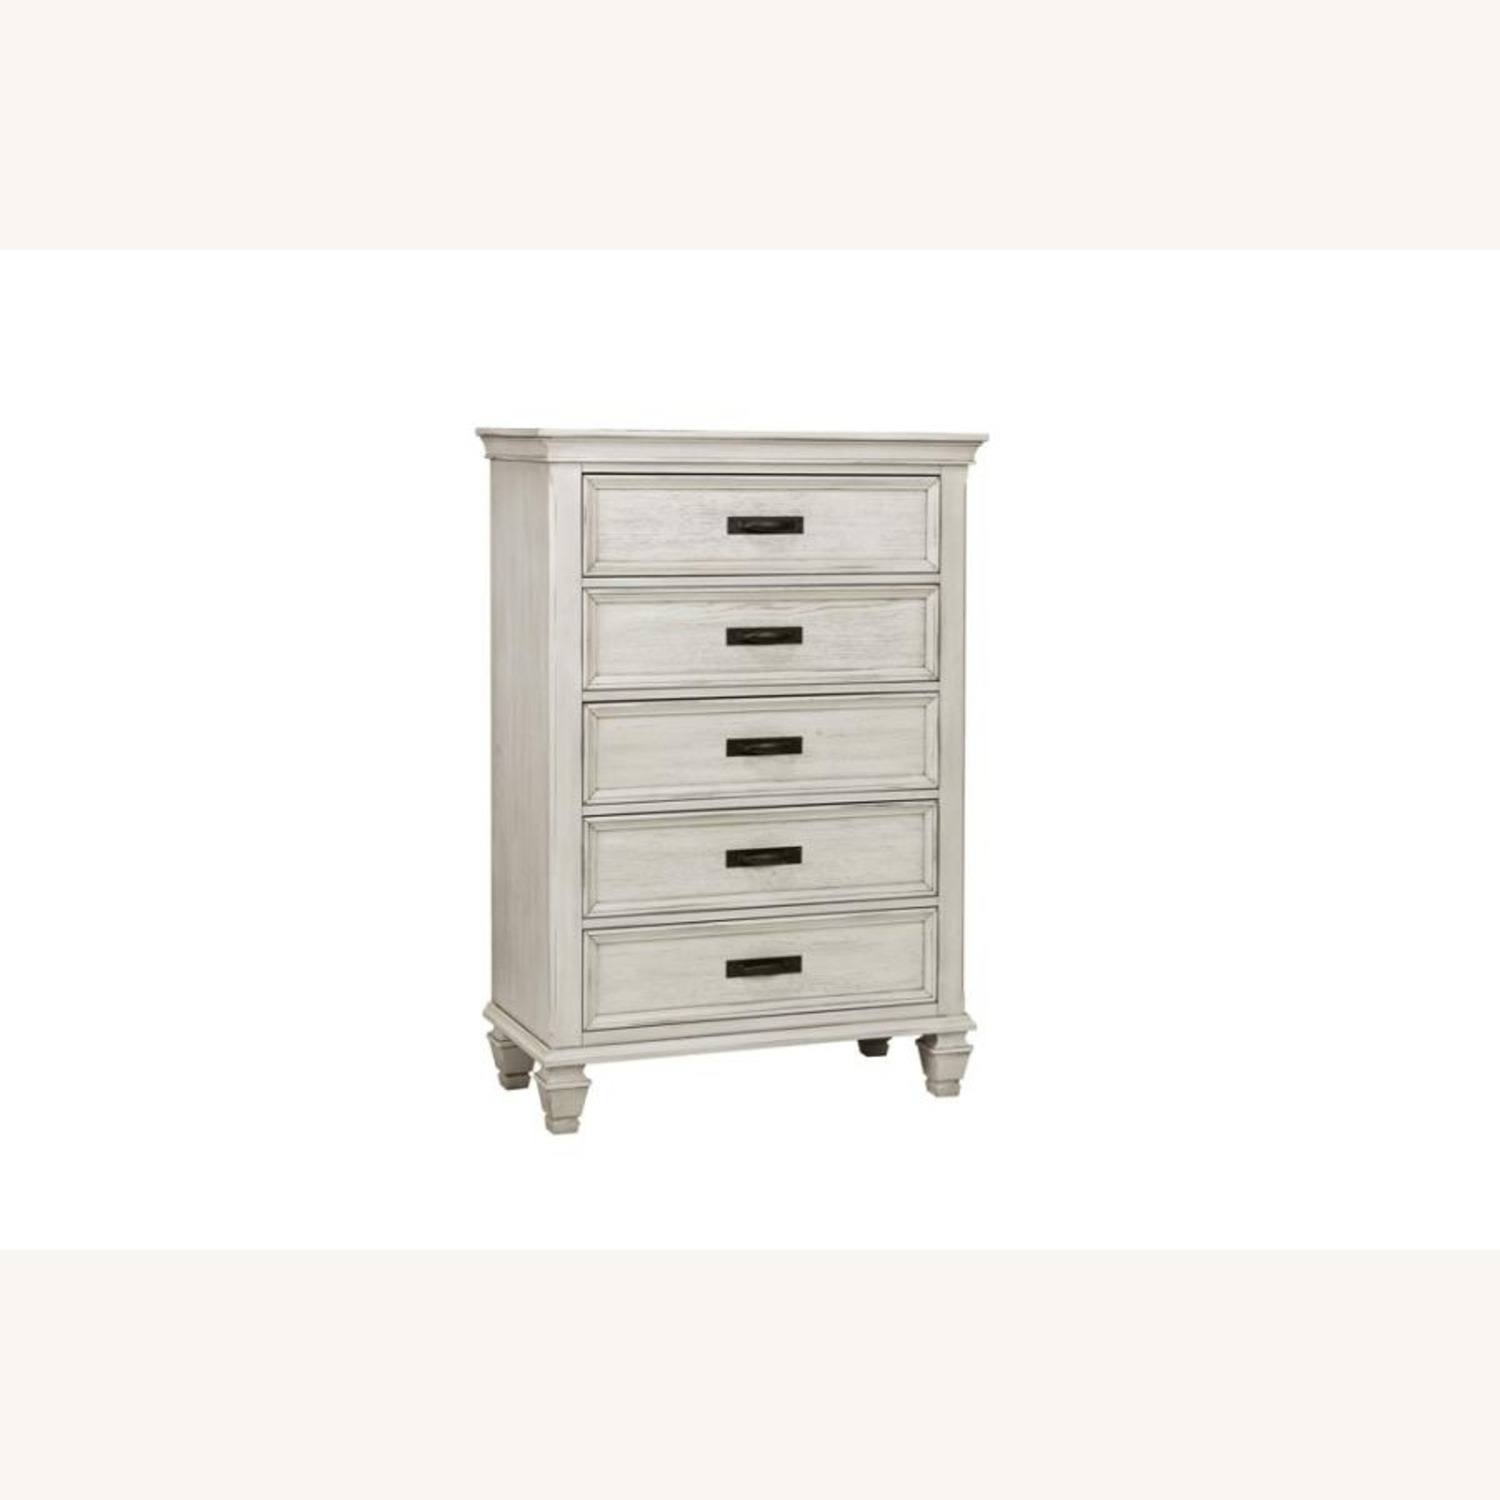 Chest In Warm Antique White Finish W/ Grey Accents - image-0